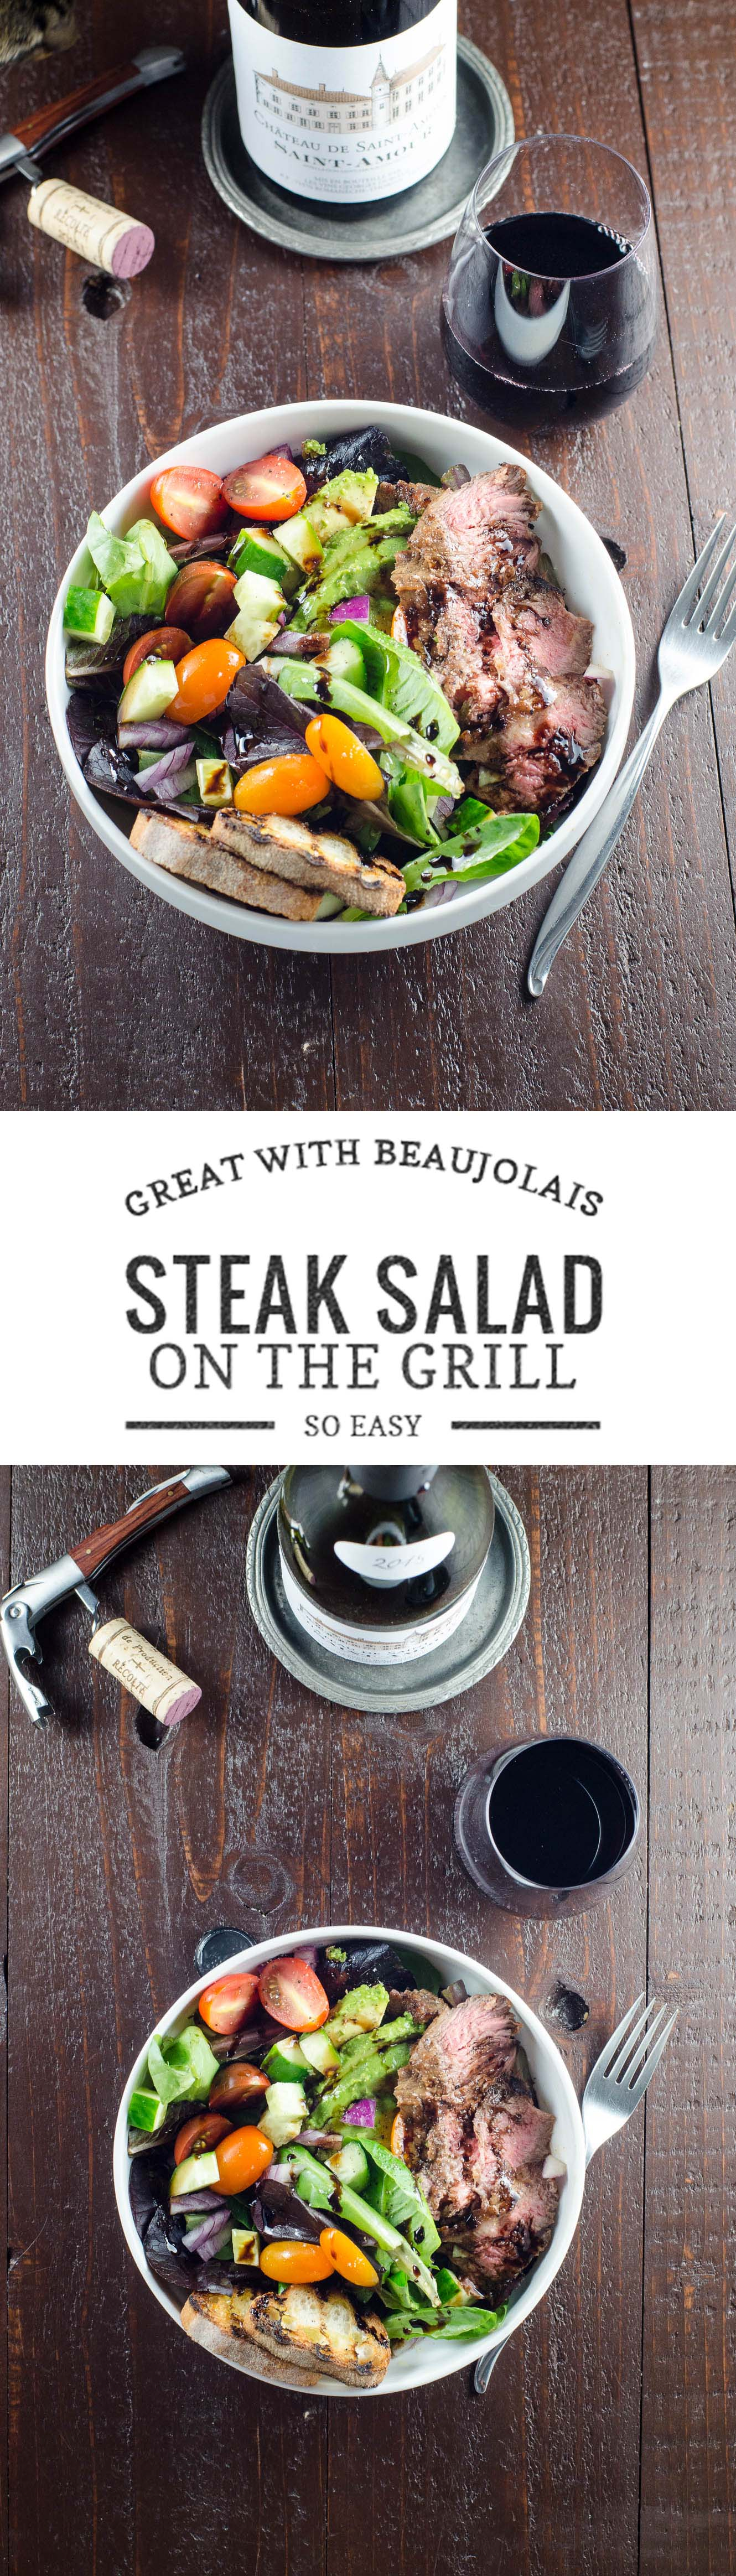 This easy recipe for boldly flavored, marinated grilled skirt steak salad pairs beautifully with Beaujolais. (Message for 21 and up.) #sponsored